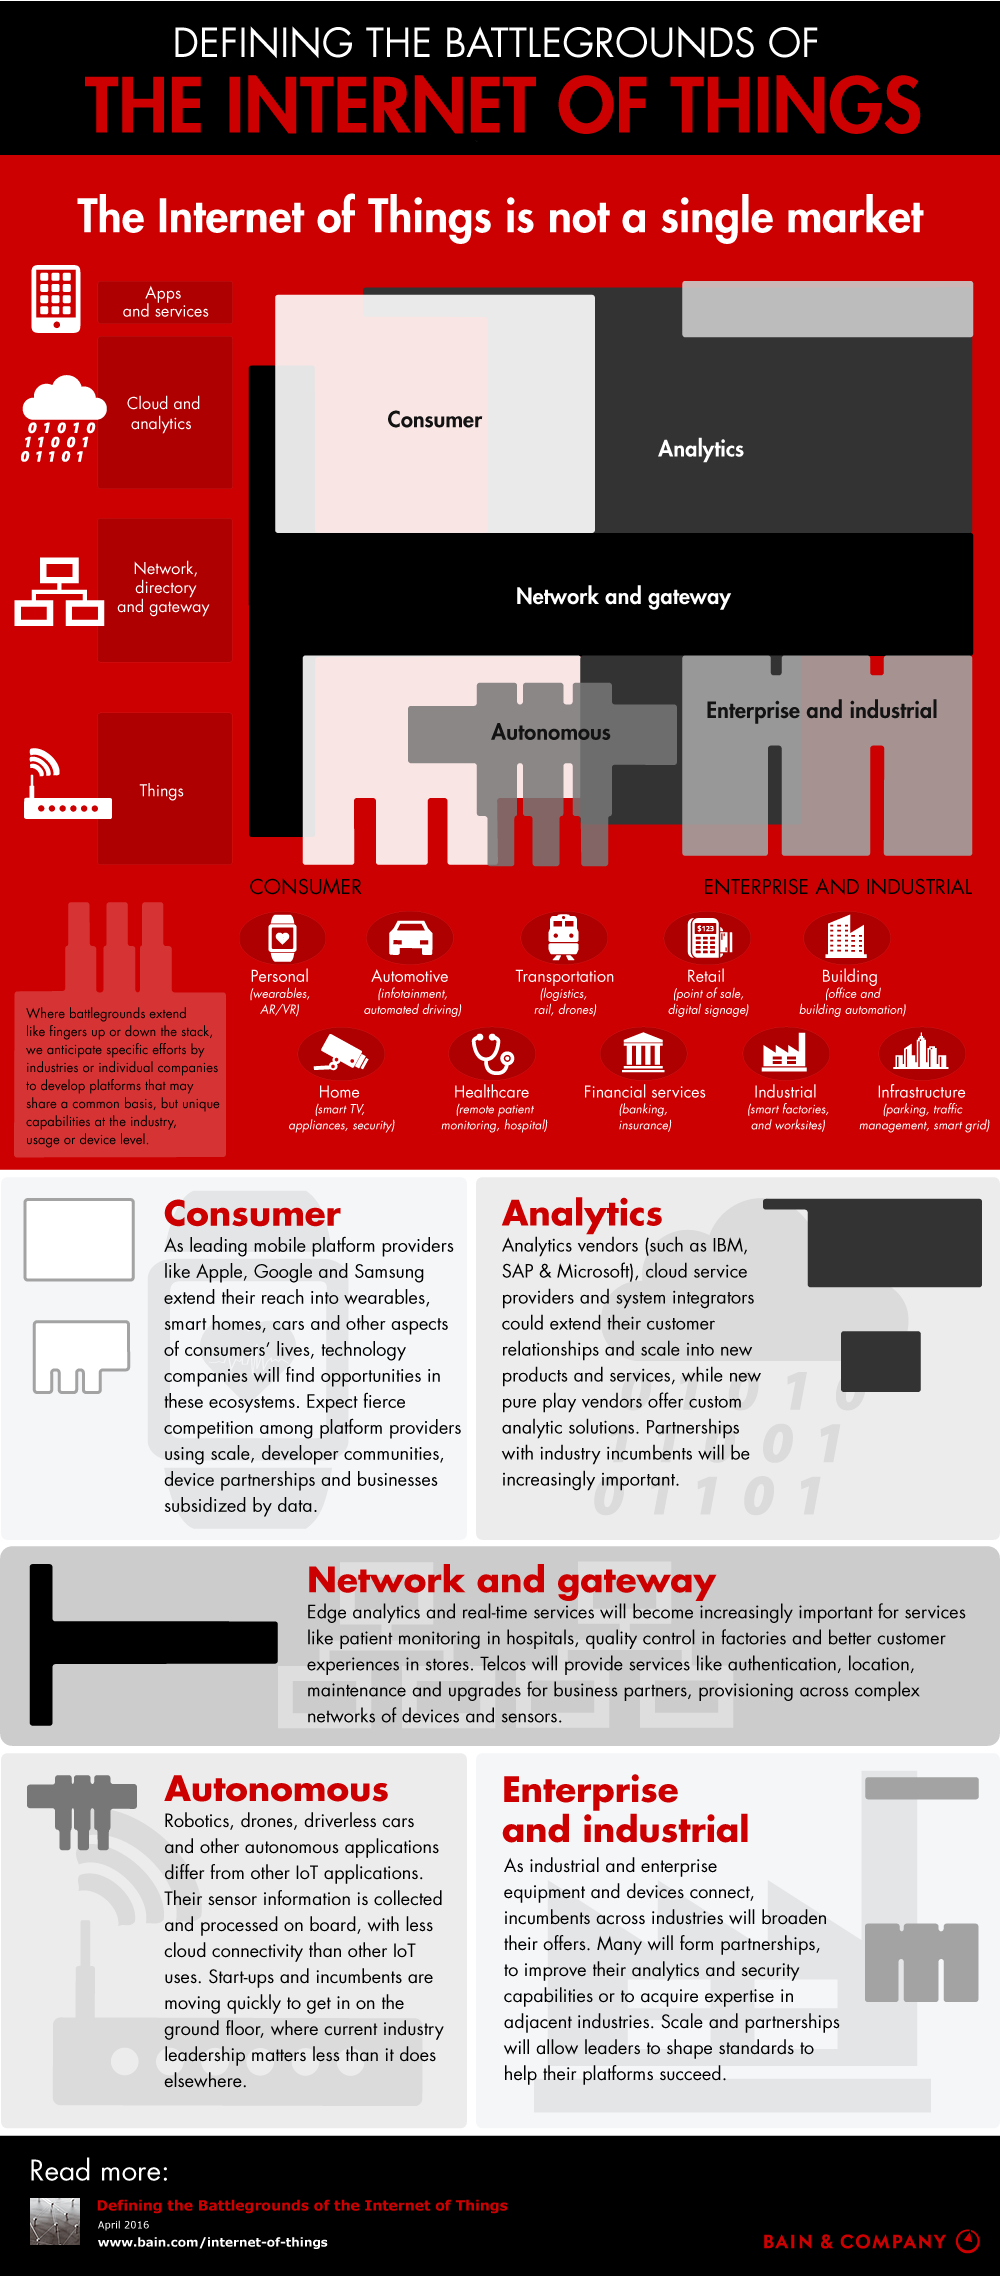 internet-of-things-battlegrounds-infographic